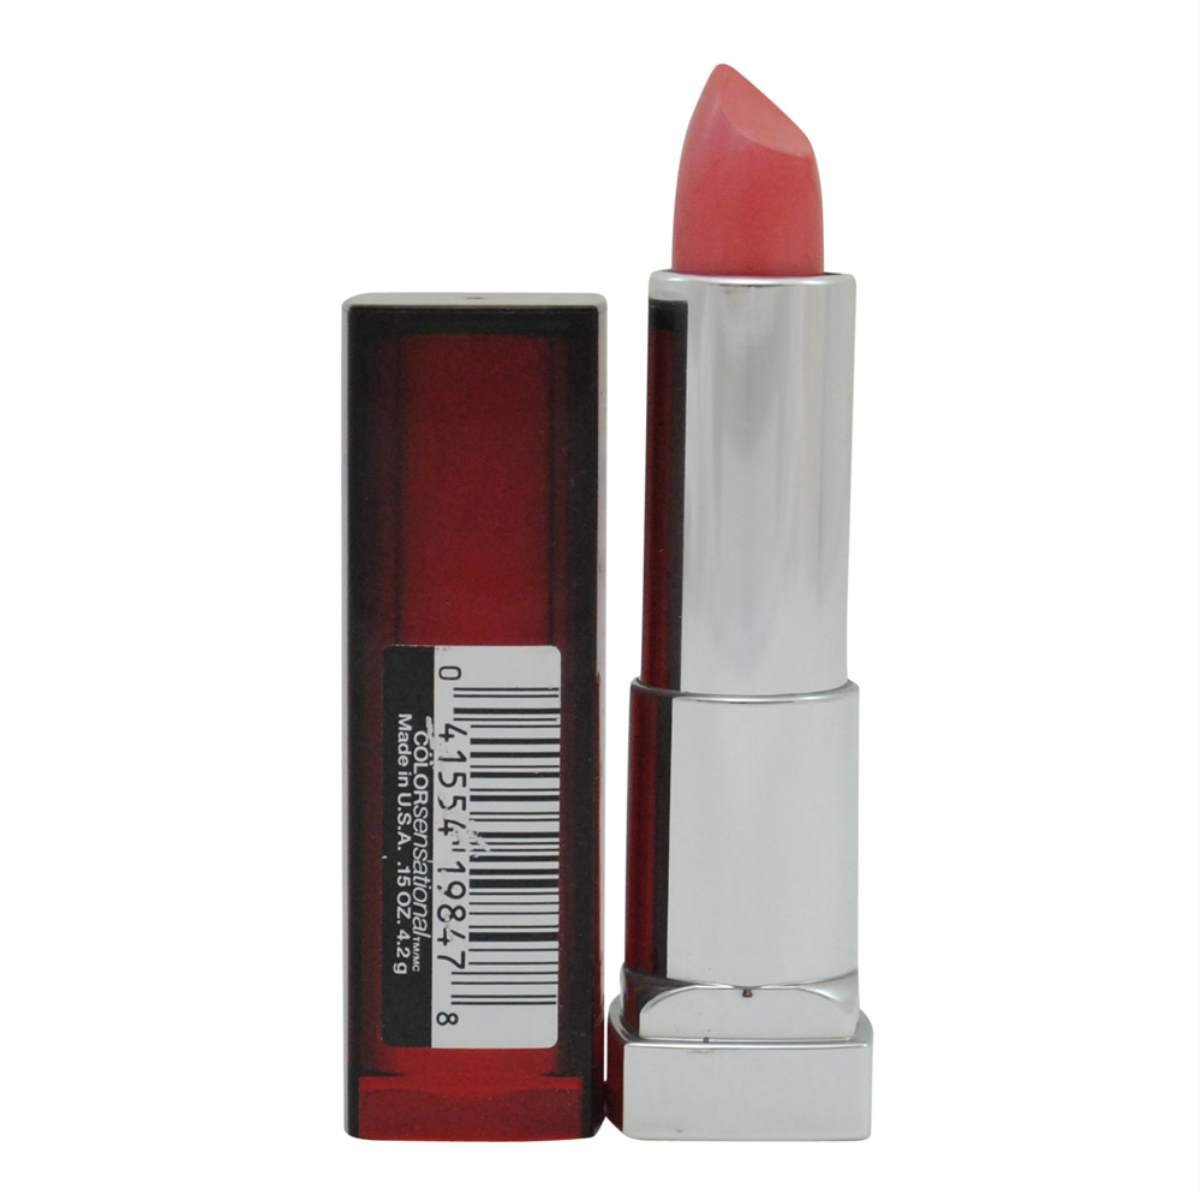 Maybelline New York Colorsensational Lipcolor, Peachy Scene 525, 0.15 Ounce (Pack of 2)